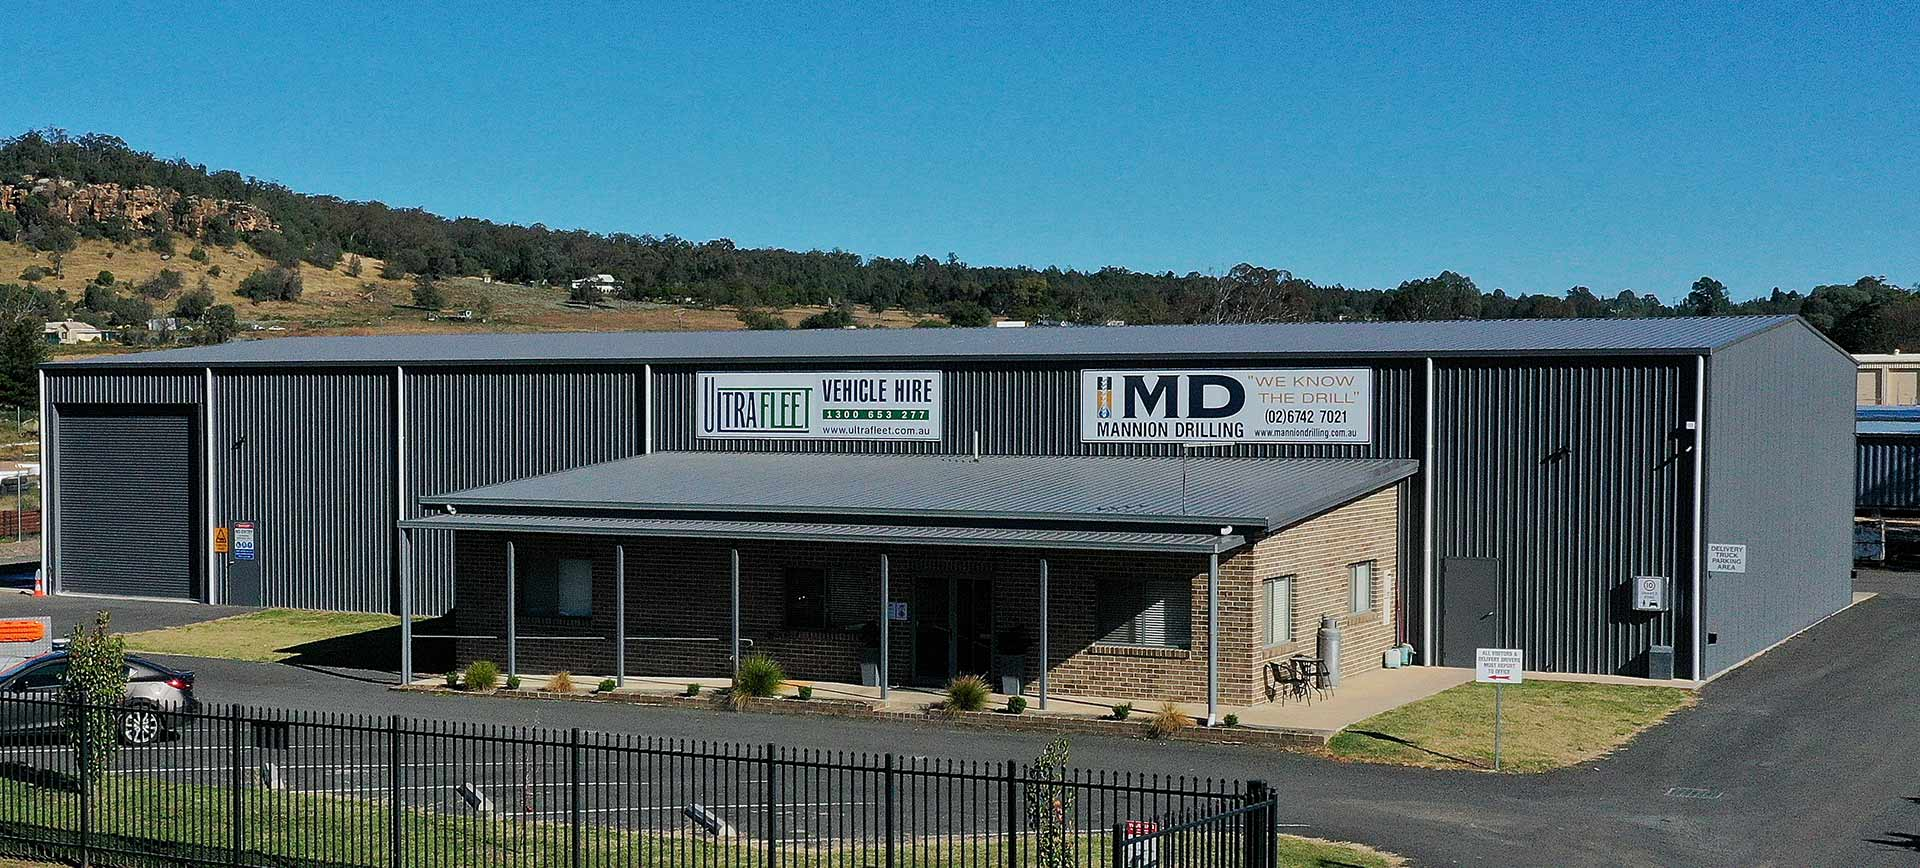 Ultra Fleet Vehicle hire and Mannion Drilling Headquarter